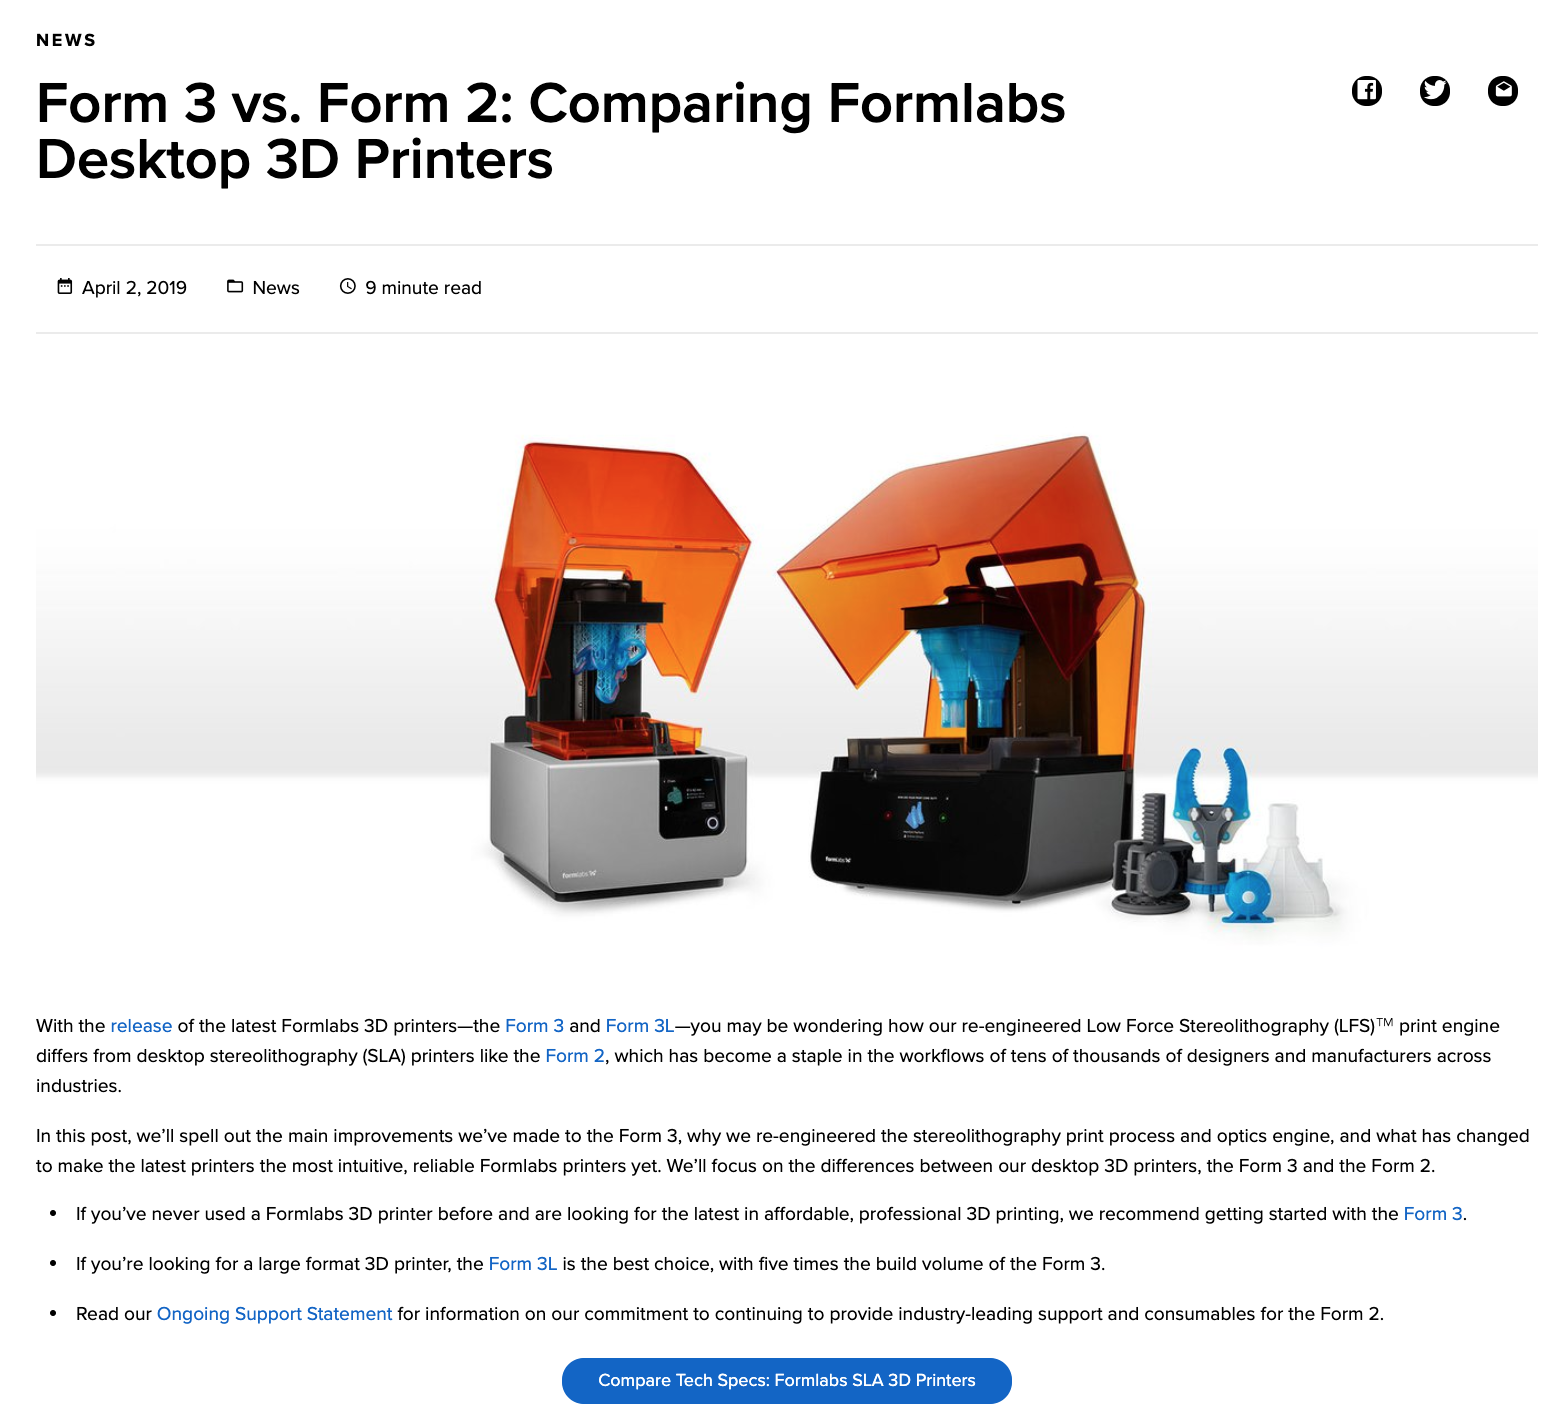 Blog: Form 3 vs. Form 2: Comparing Formlabs Desktop 3D Printers